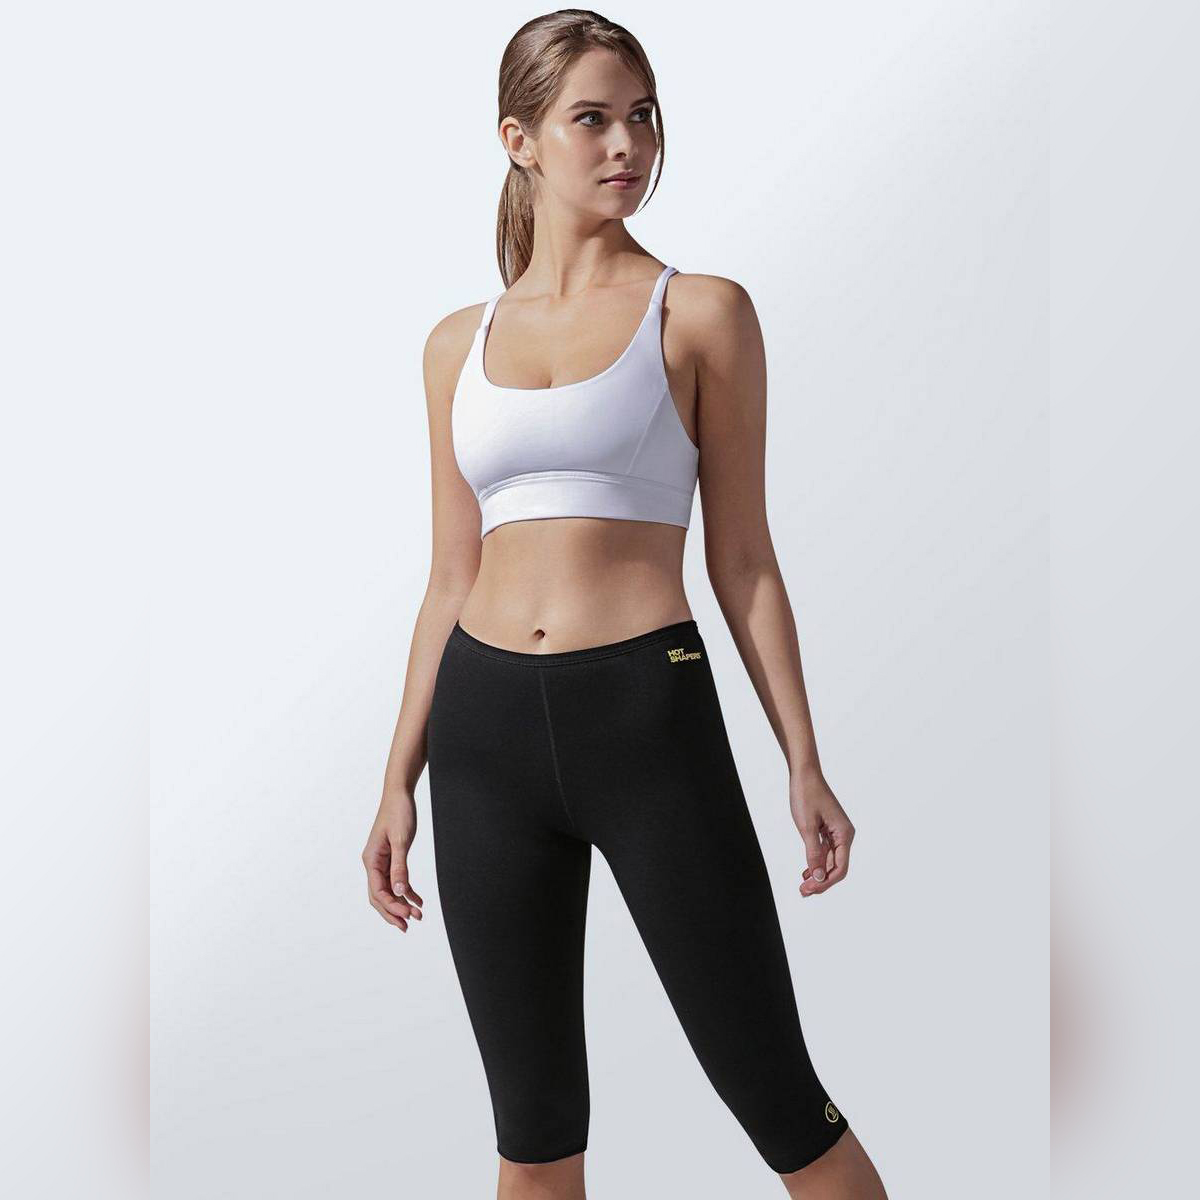 Hot Thermo Body Shaper, Neoprene Slimming Capri Pants, Thighs Fat Burner, Best Workout Sauna Suit, High Waist Tummy Control Shapewear for Weight Loss